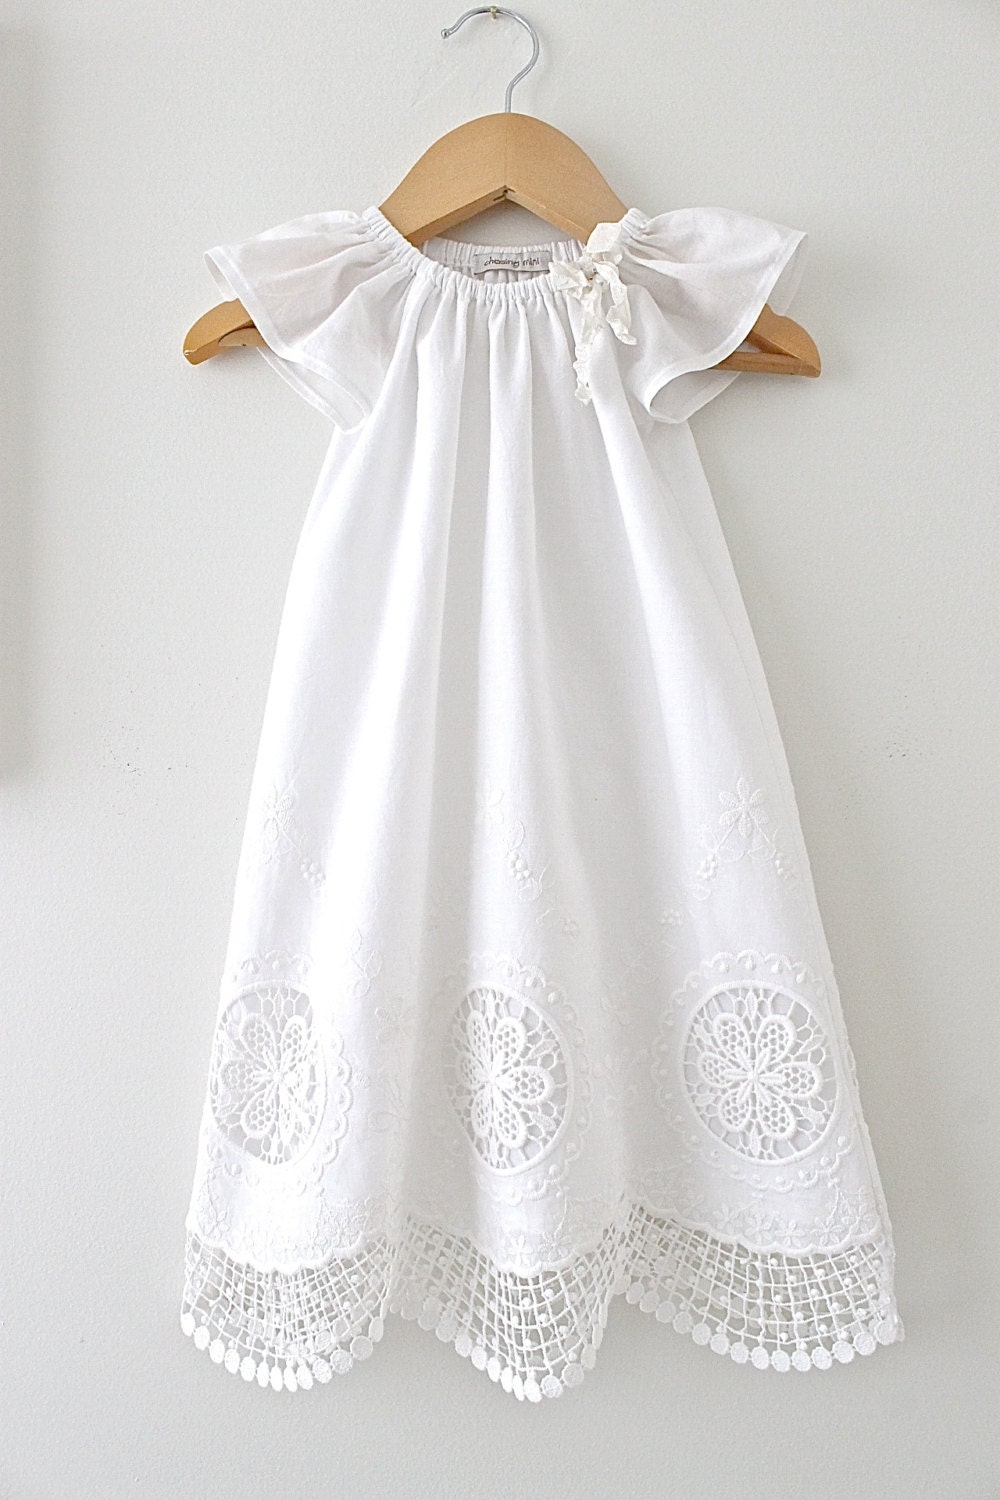 Baby Girl Long Baptism Dress Antique White And Lace Cotton